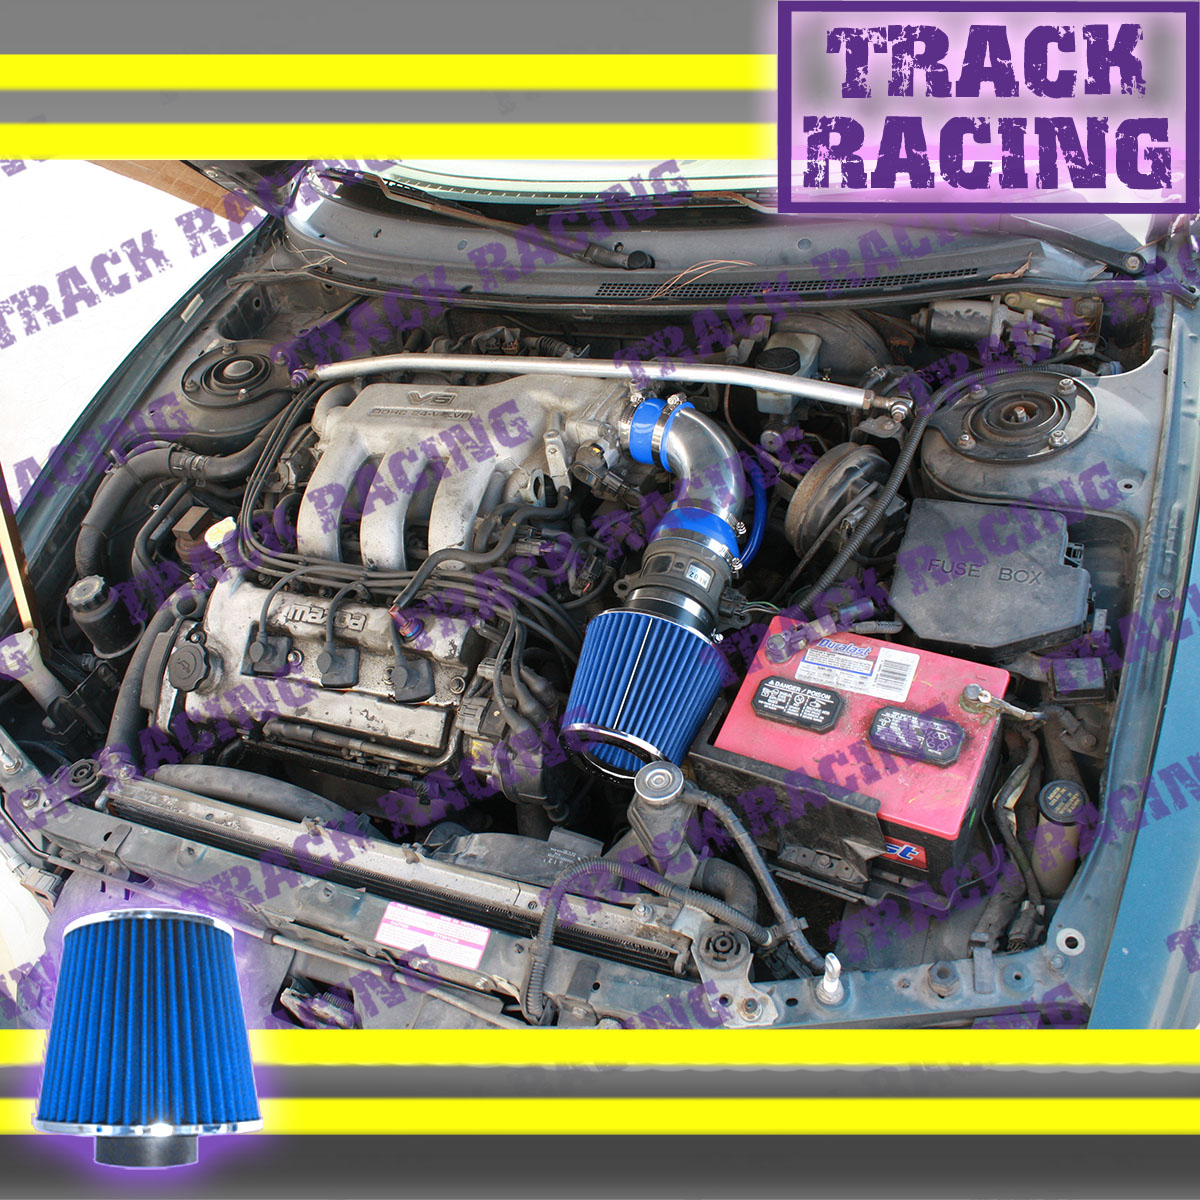 details about 93 94 95 96 97 ford probe gt mazda mx6 626 2 5l v6 air intake kit blue tb 1991 ford ranger fuse box diagram ford probe parts partsgeek com